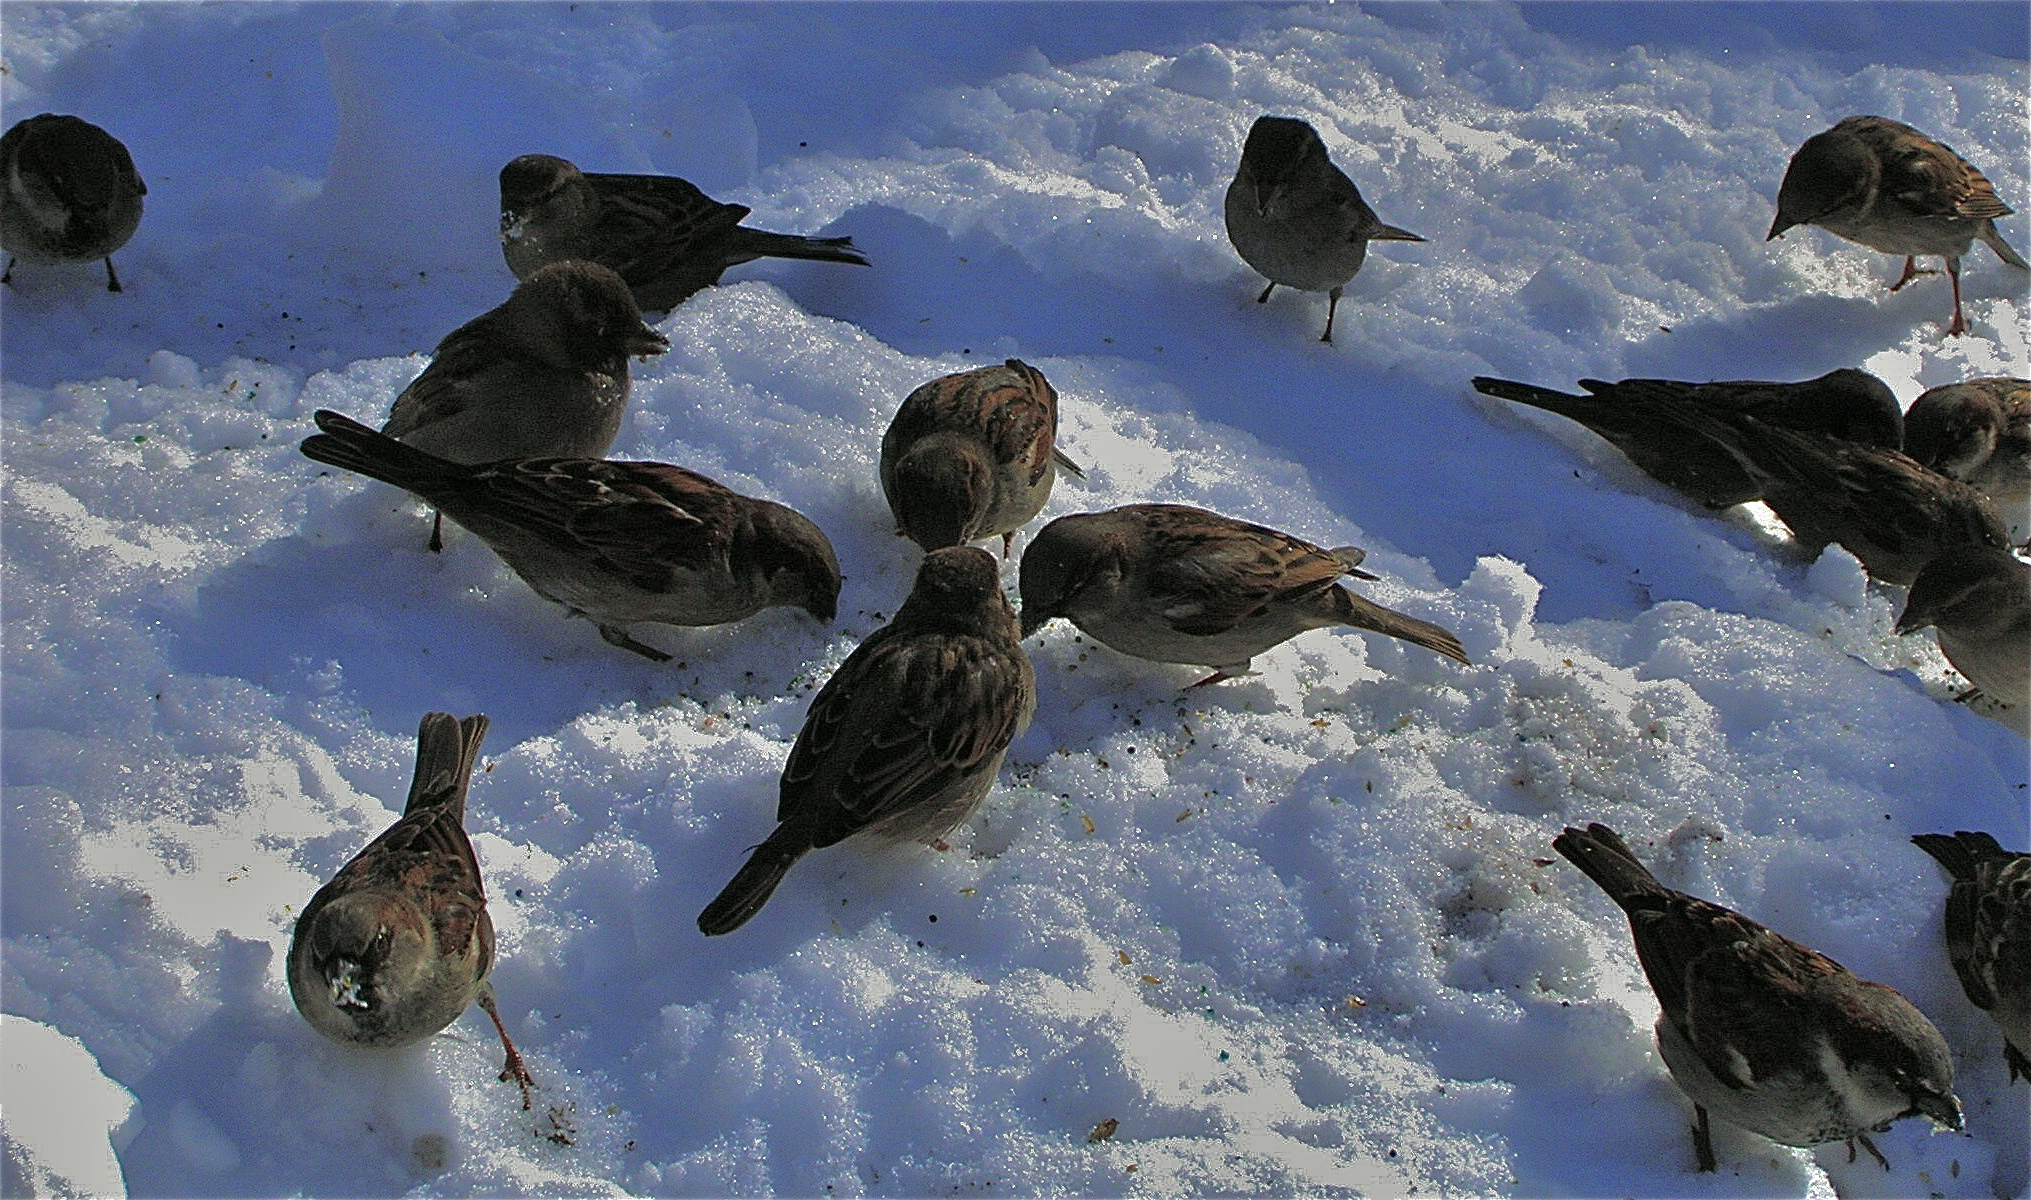 Little birds enjoying the snow in Central Park